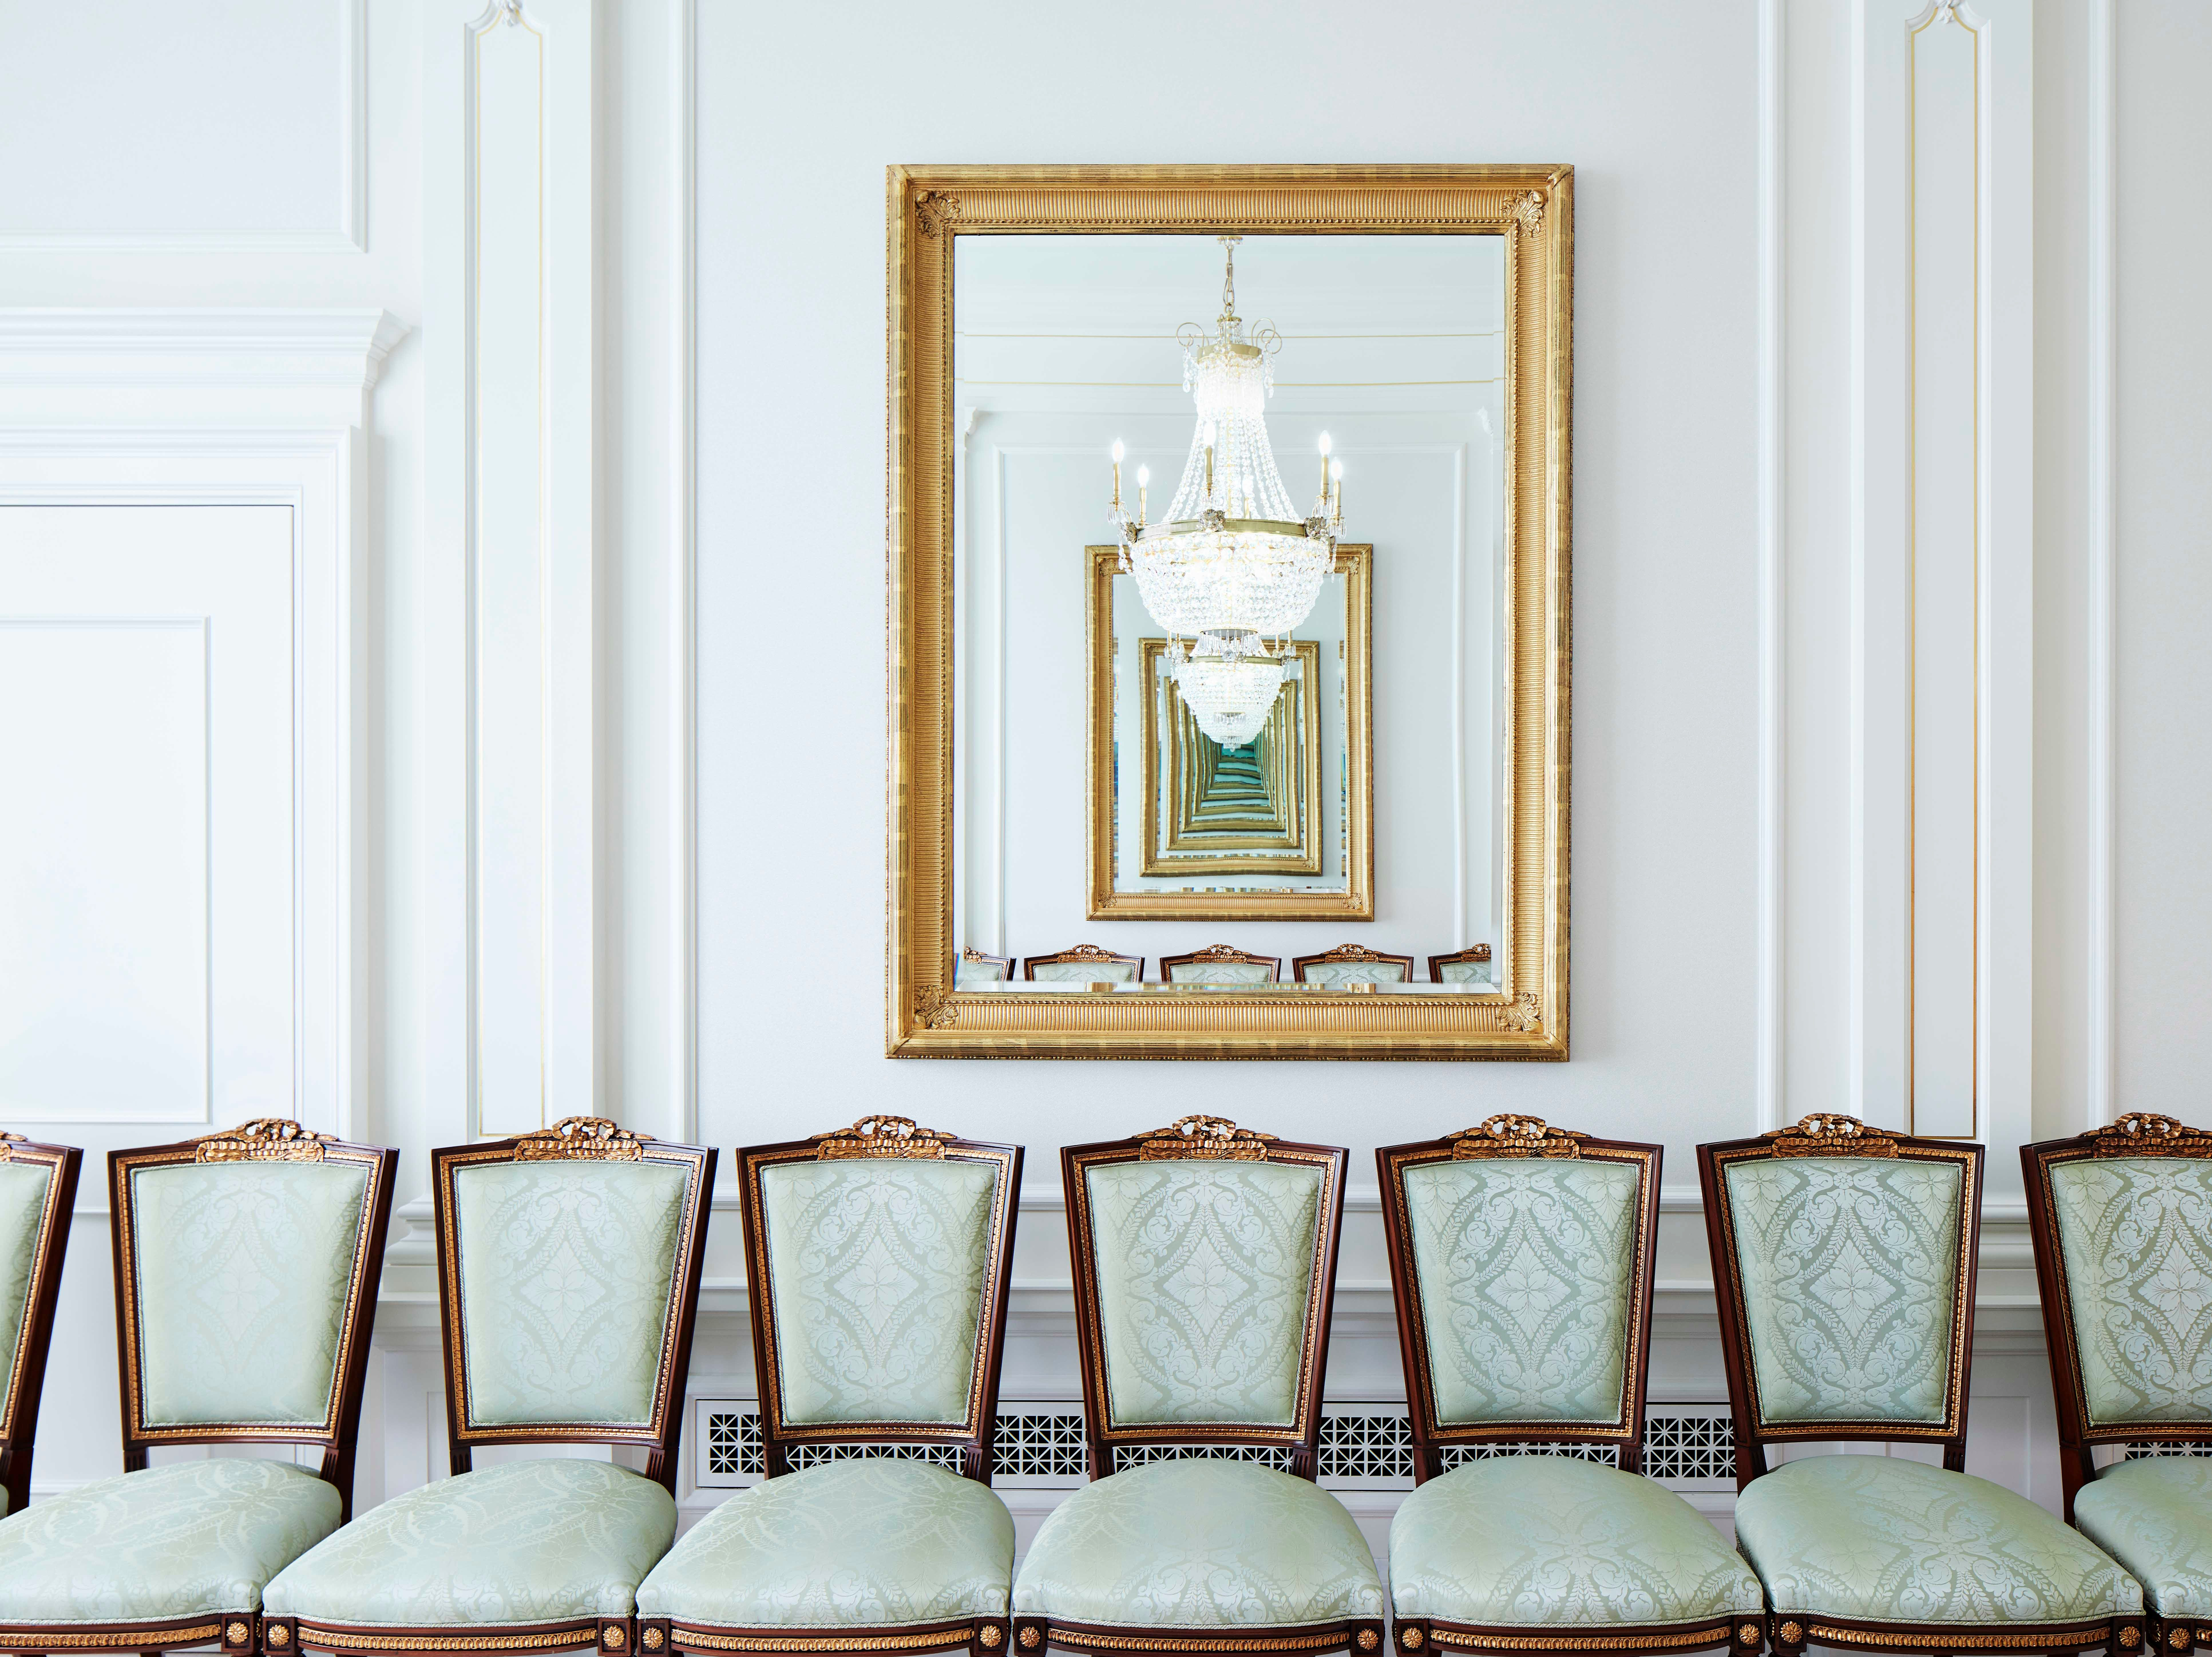 This image features the sealing room in the Memphis Tennessee Temple.